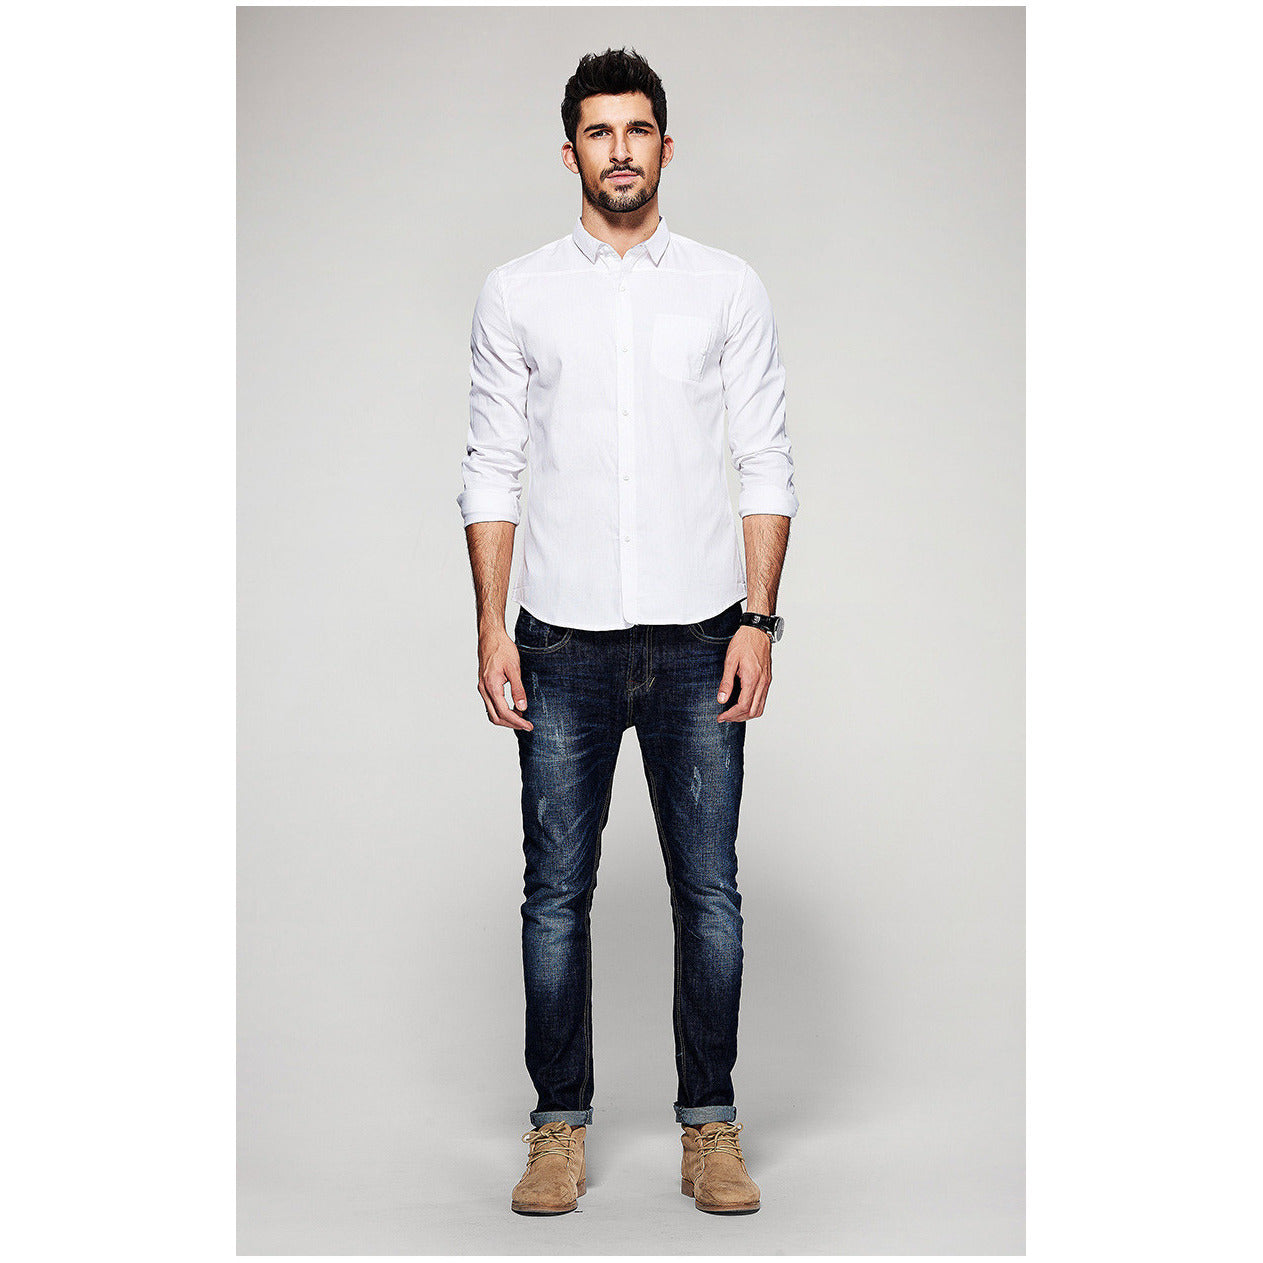 Dan Collared White Shirt - Haberfasher